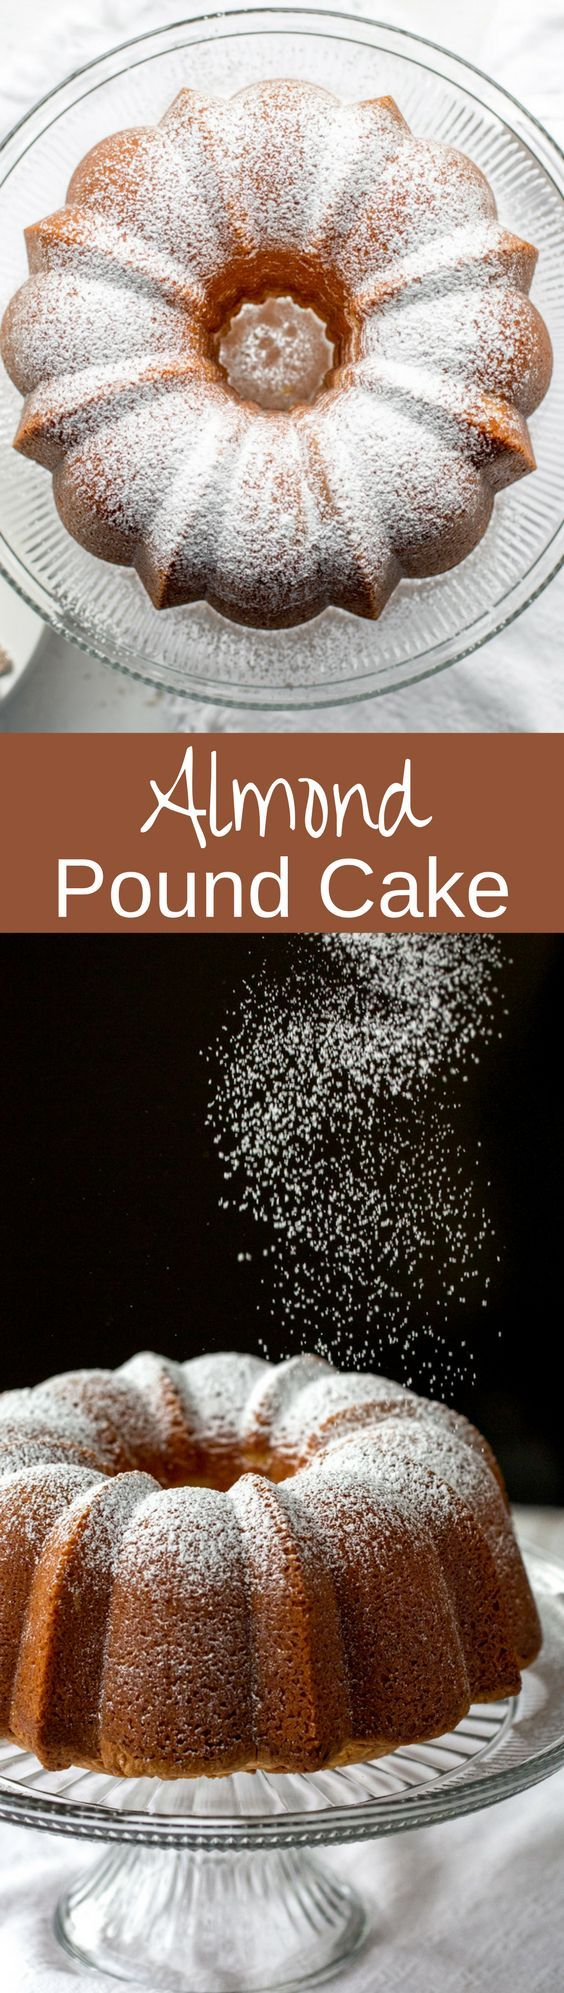 Perfect Every Time - Almond Pound Cake - tender and buttery, this pound cake is always a winner. Great toasted, served plain, with ice cream or added to trifles or as a layer in an ice cream freezer cake. www.savingdessert.com